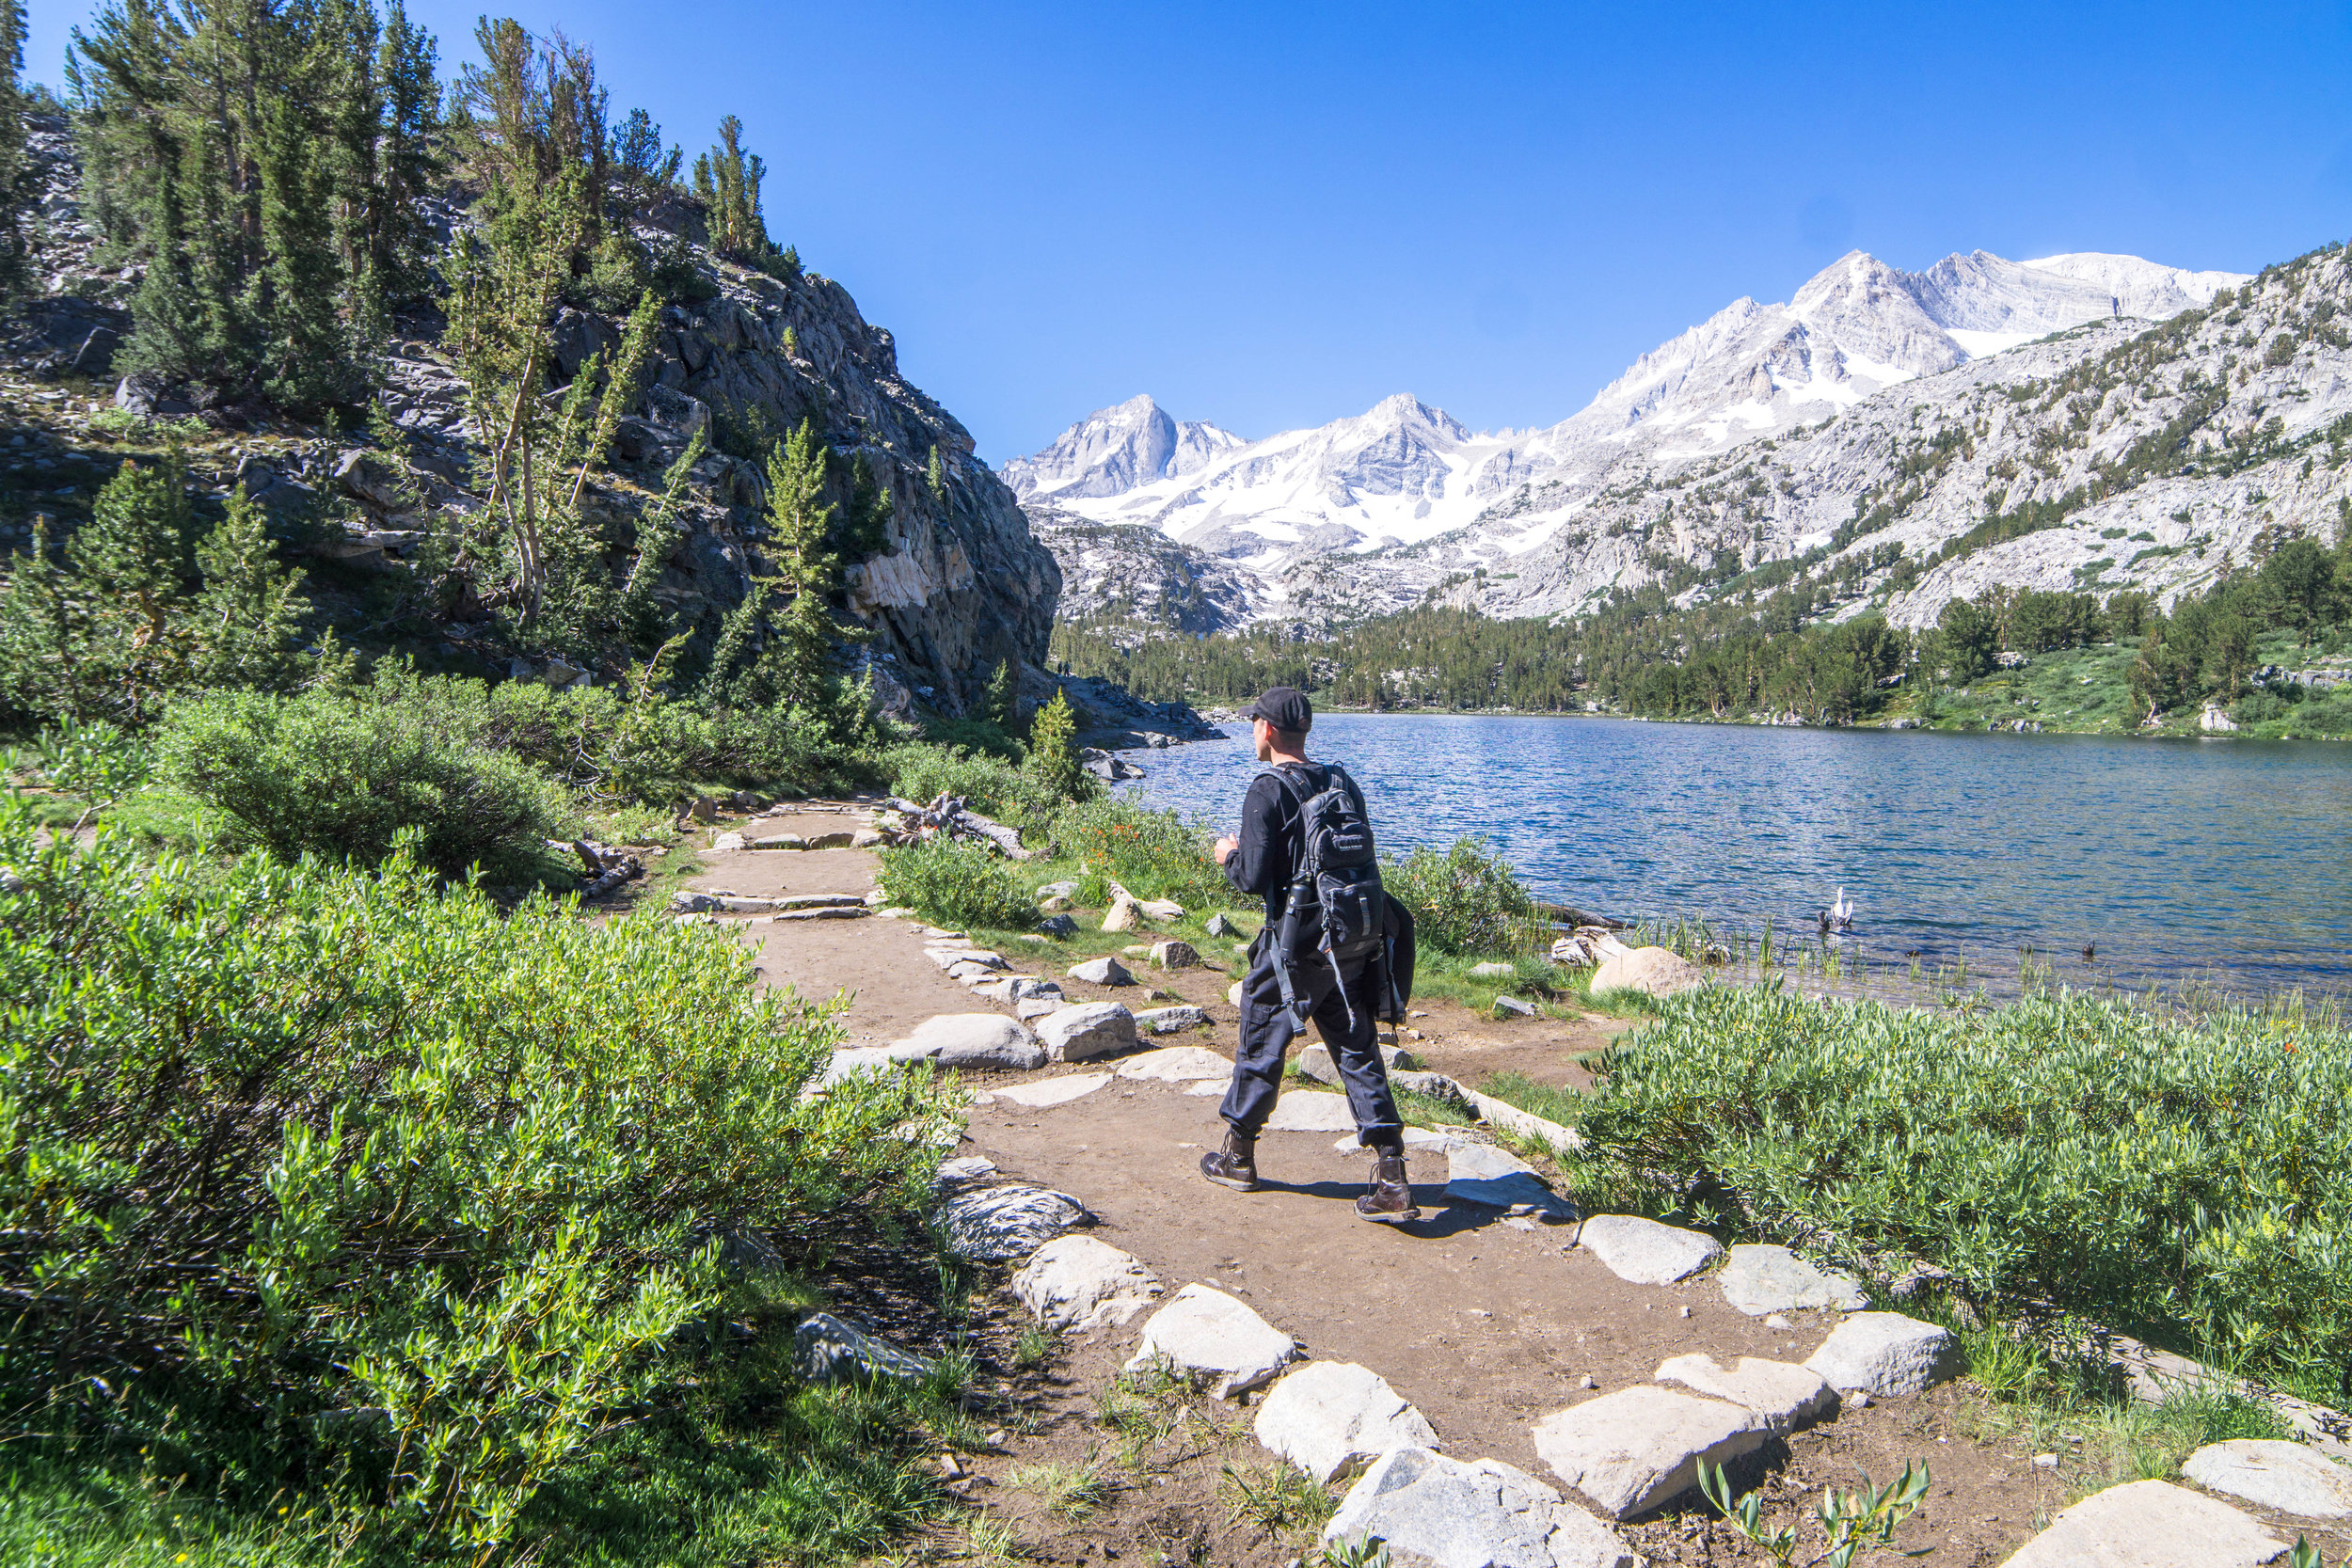 As we continued on, the opportunities for backpacking became abundantly clear.